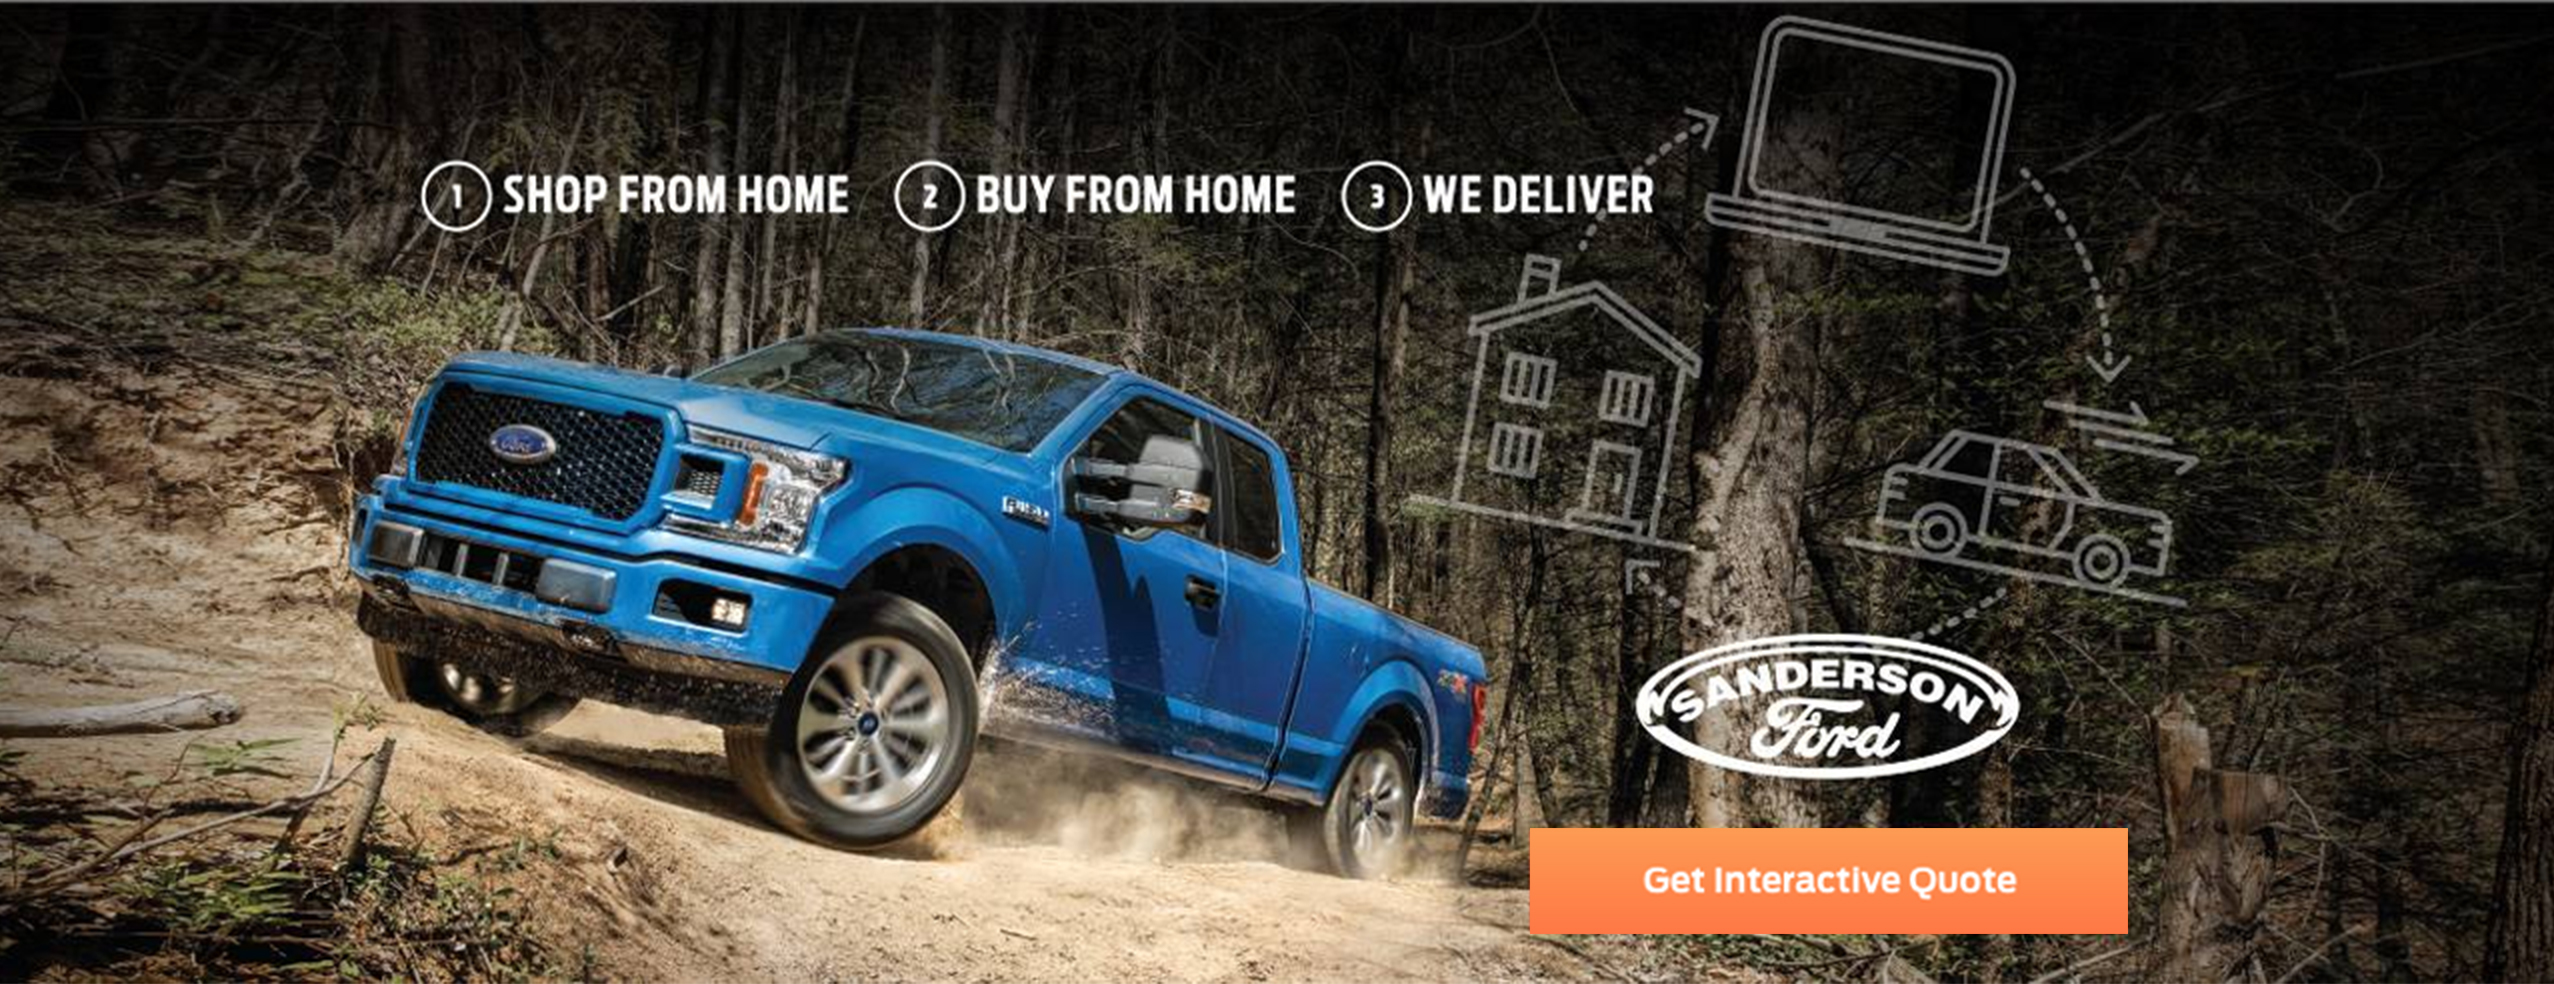 Get an Interactive Quote, buy your new vehicle from home, and get it delivered.